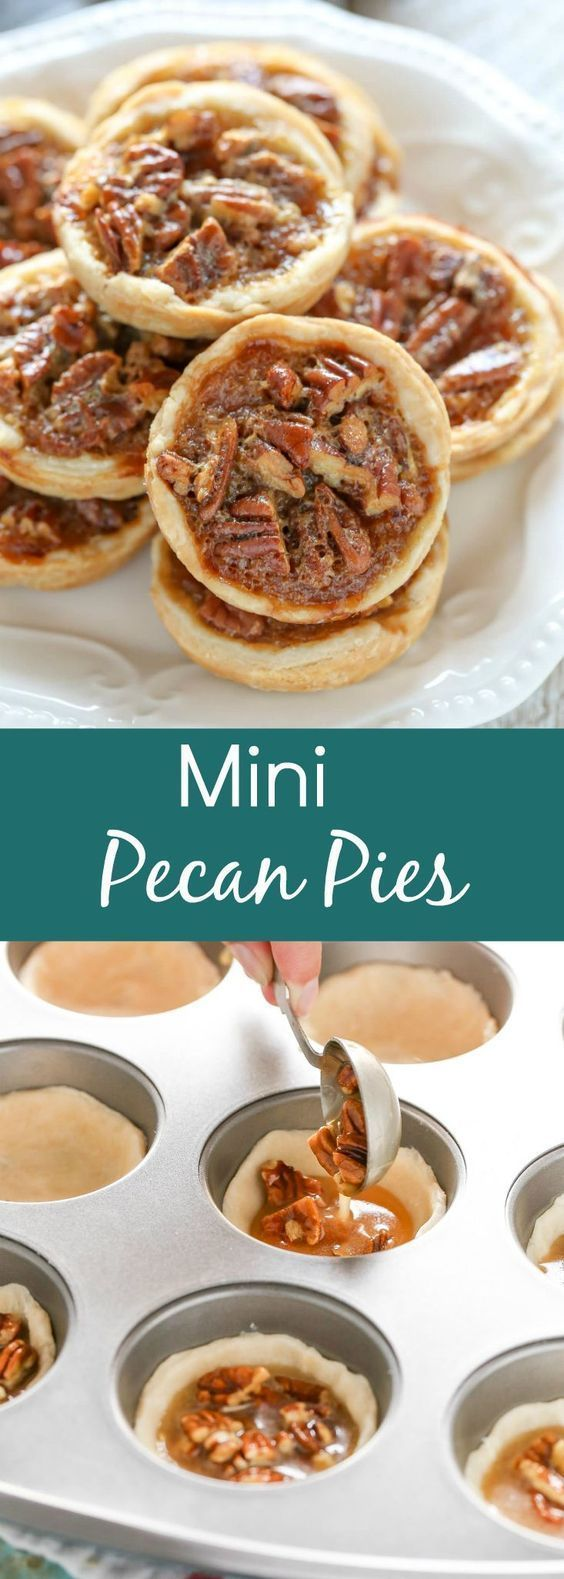 Holiday Baking With Bluestar & Kathy Wakile. These mini pecan pies are so much fun! Easy to make and delicious